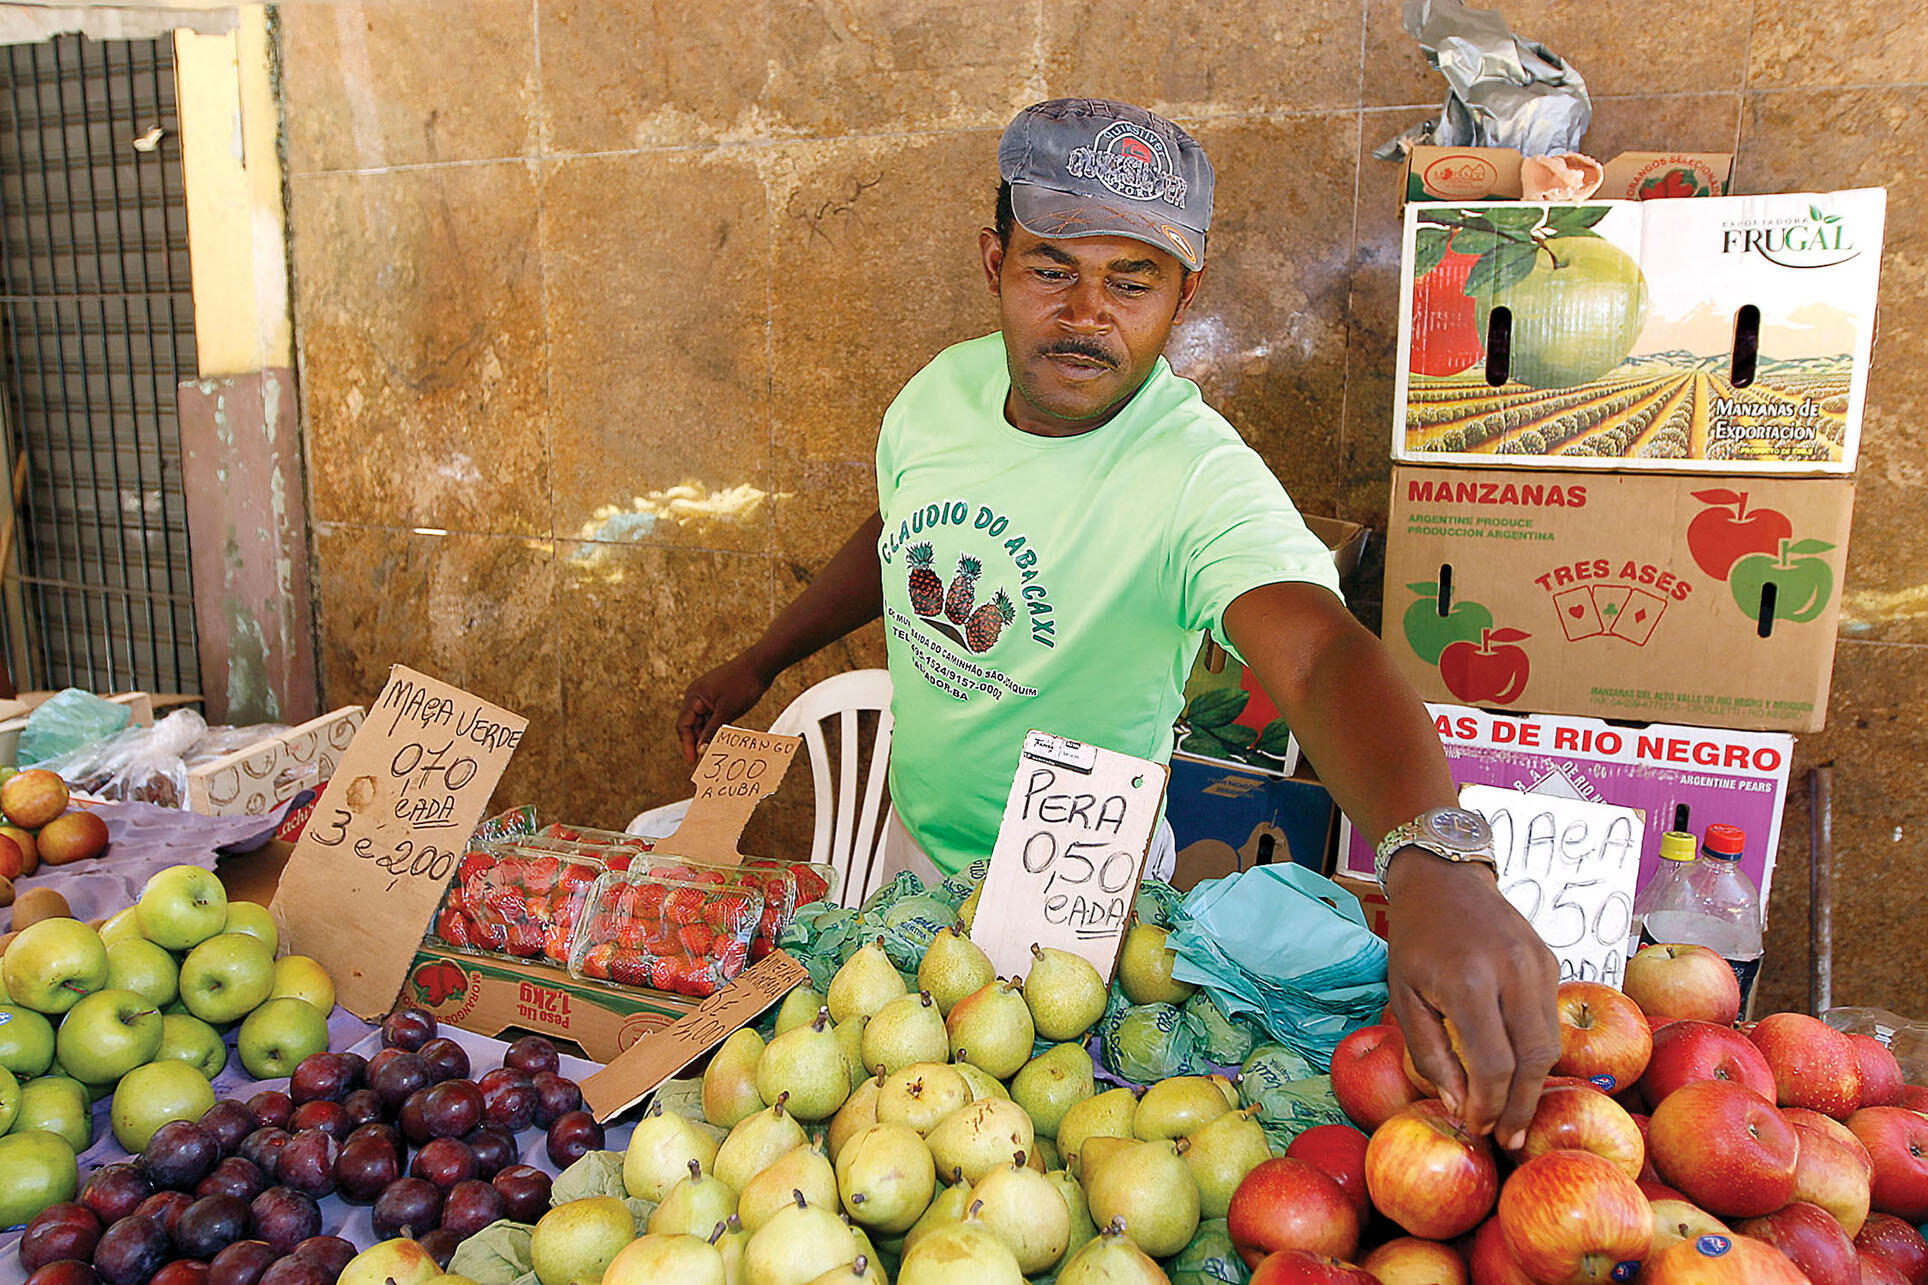 a fruit vendor sets up a stand on the street.